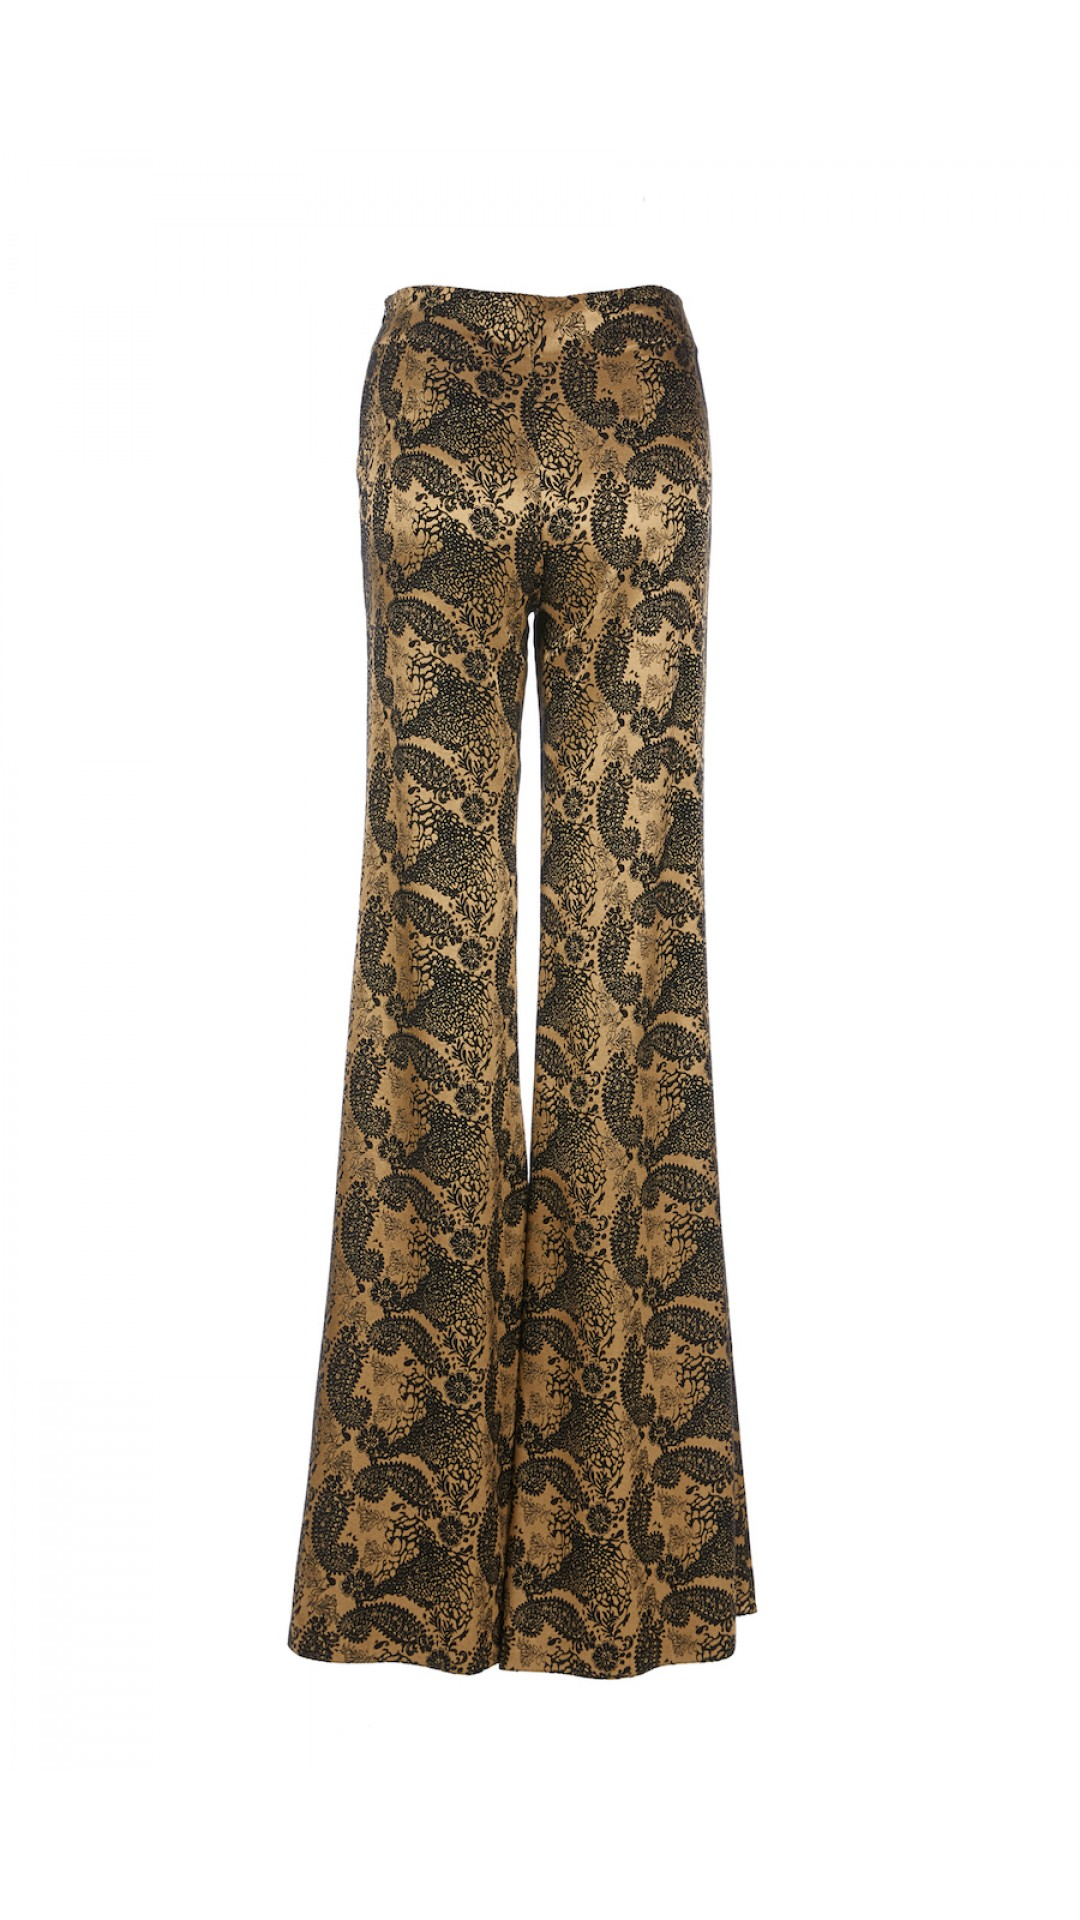 BLACK GOLD PRINTED PANTS